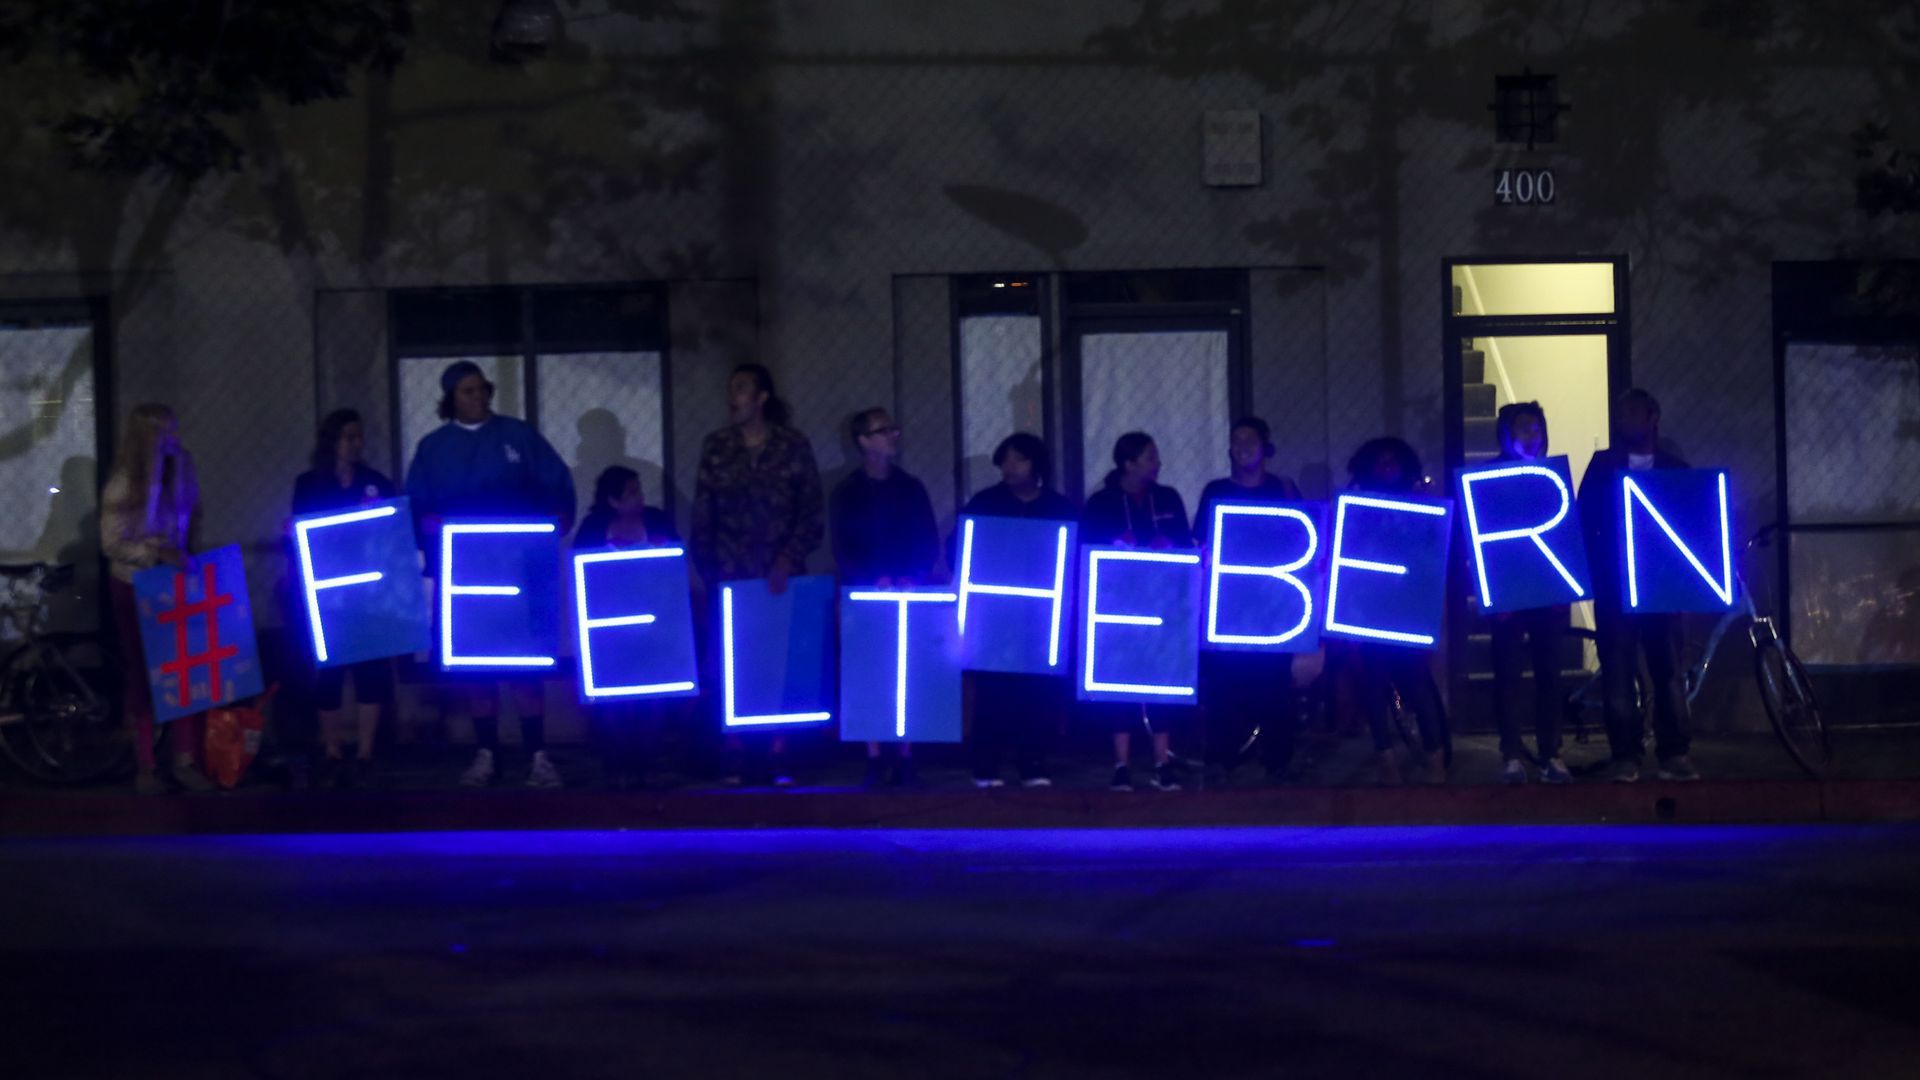 Light up sign people are holding that says #feelthebern